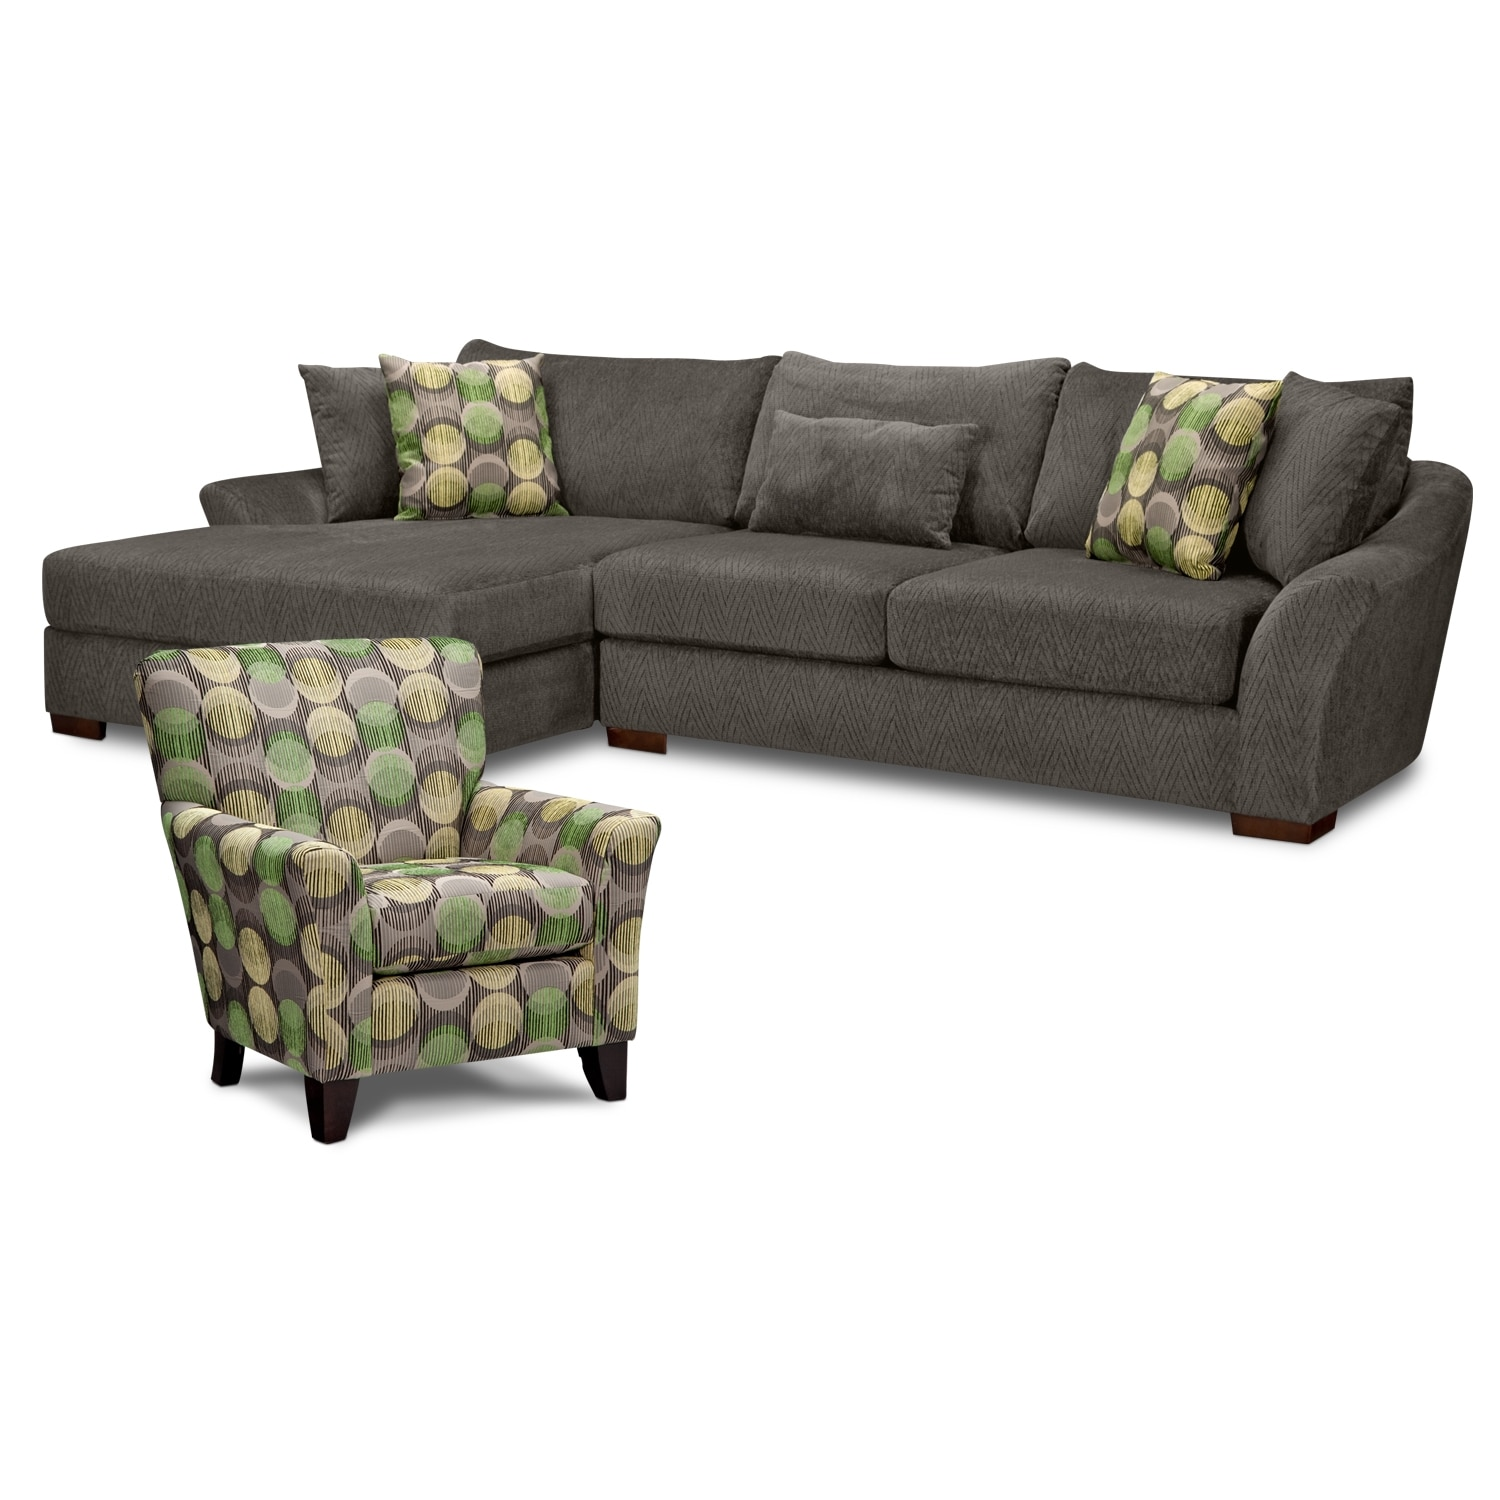 Living Room Furniture - Oasis 2 Pc. Sectional and Accent Chair